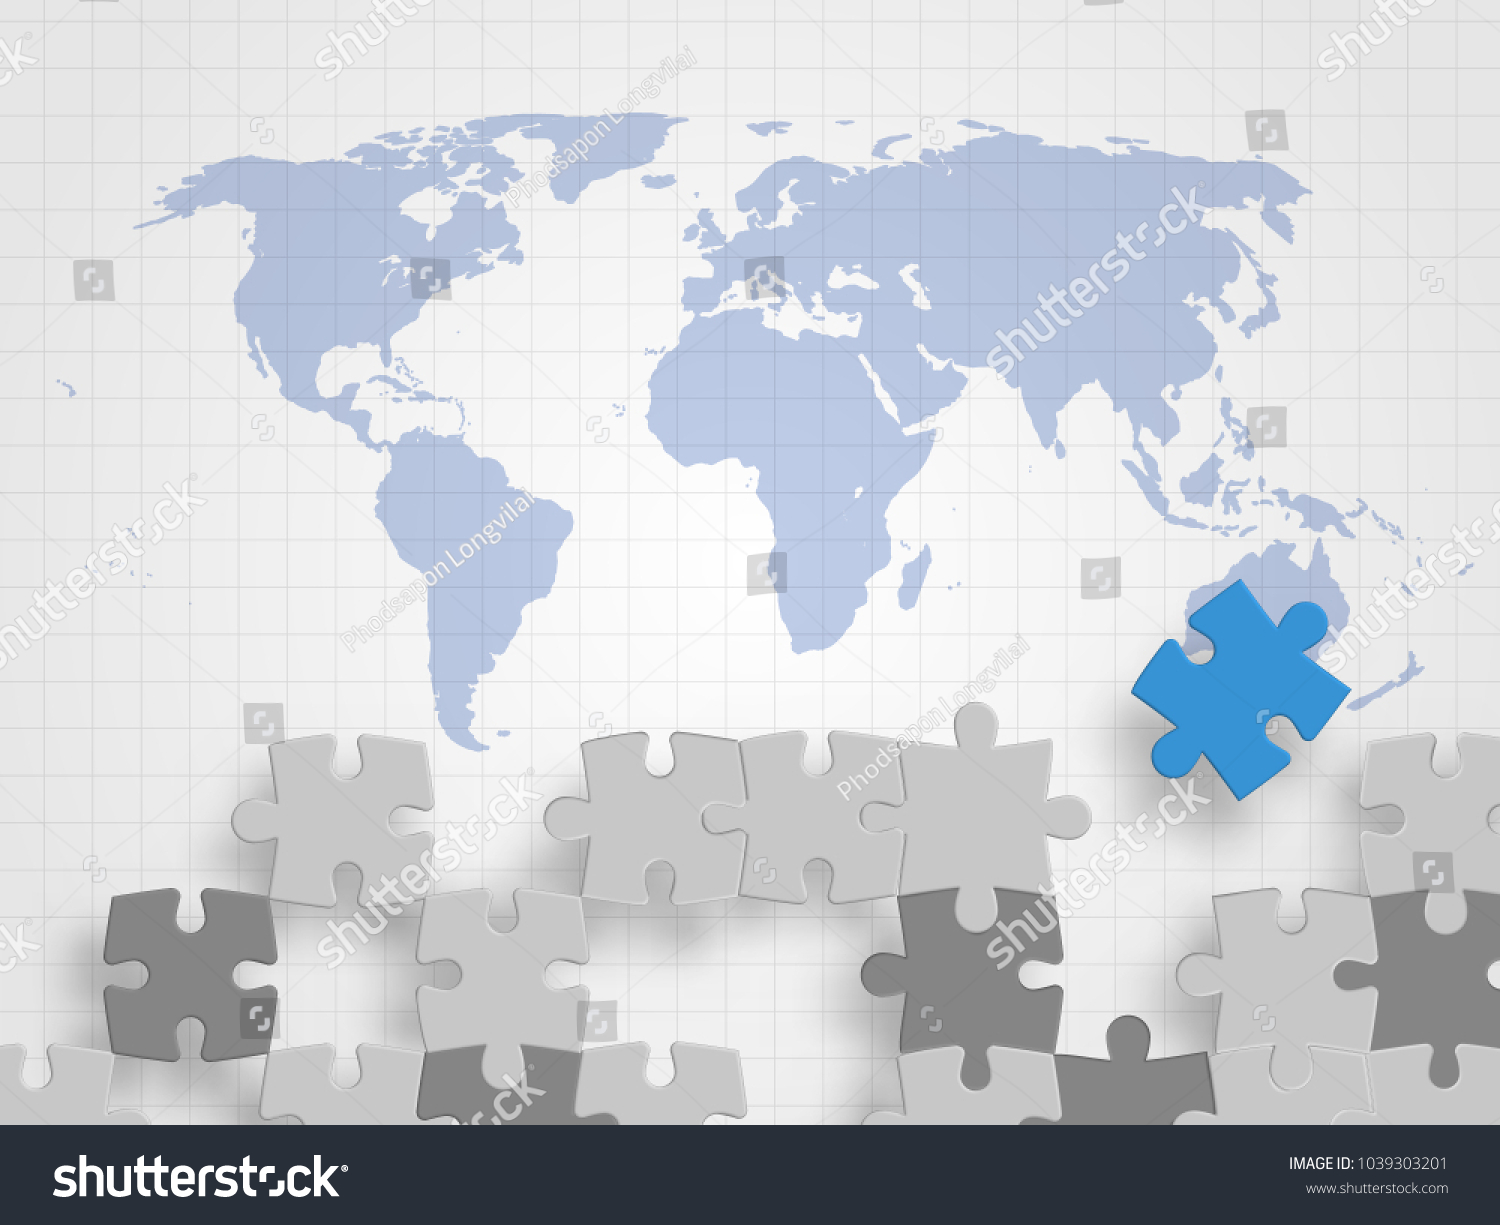 Pieces jigsaw on world map represents stock vector 2018 1039303201 pieces of jigsaw on world map represents concept of teamwork creative thinking global connection gumiabroncs Images